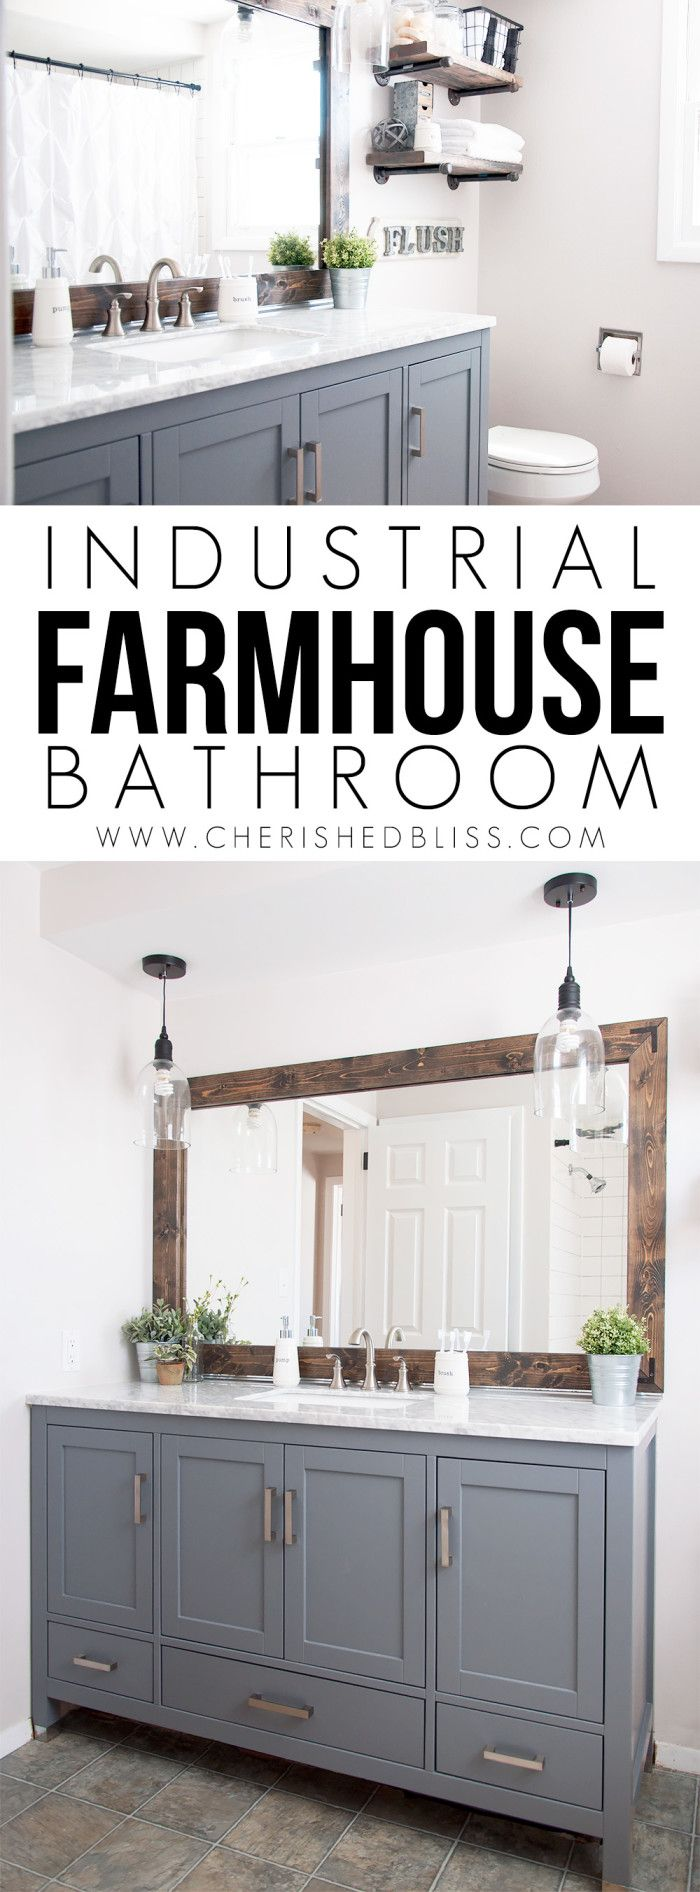 Inexpensive Mirrors For Bathrooms - Industrial farmhouse bathroom reveal